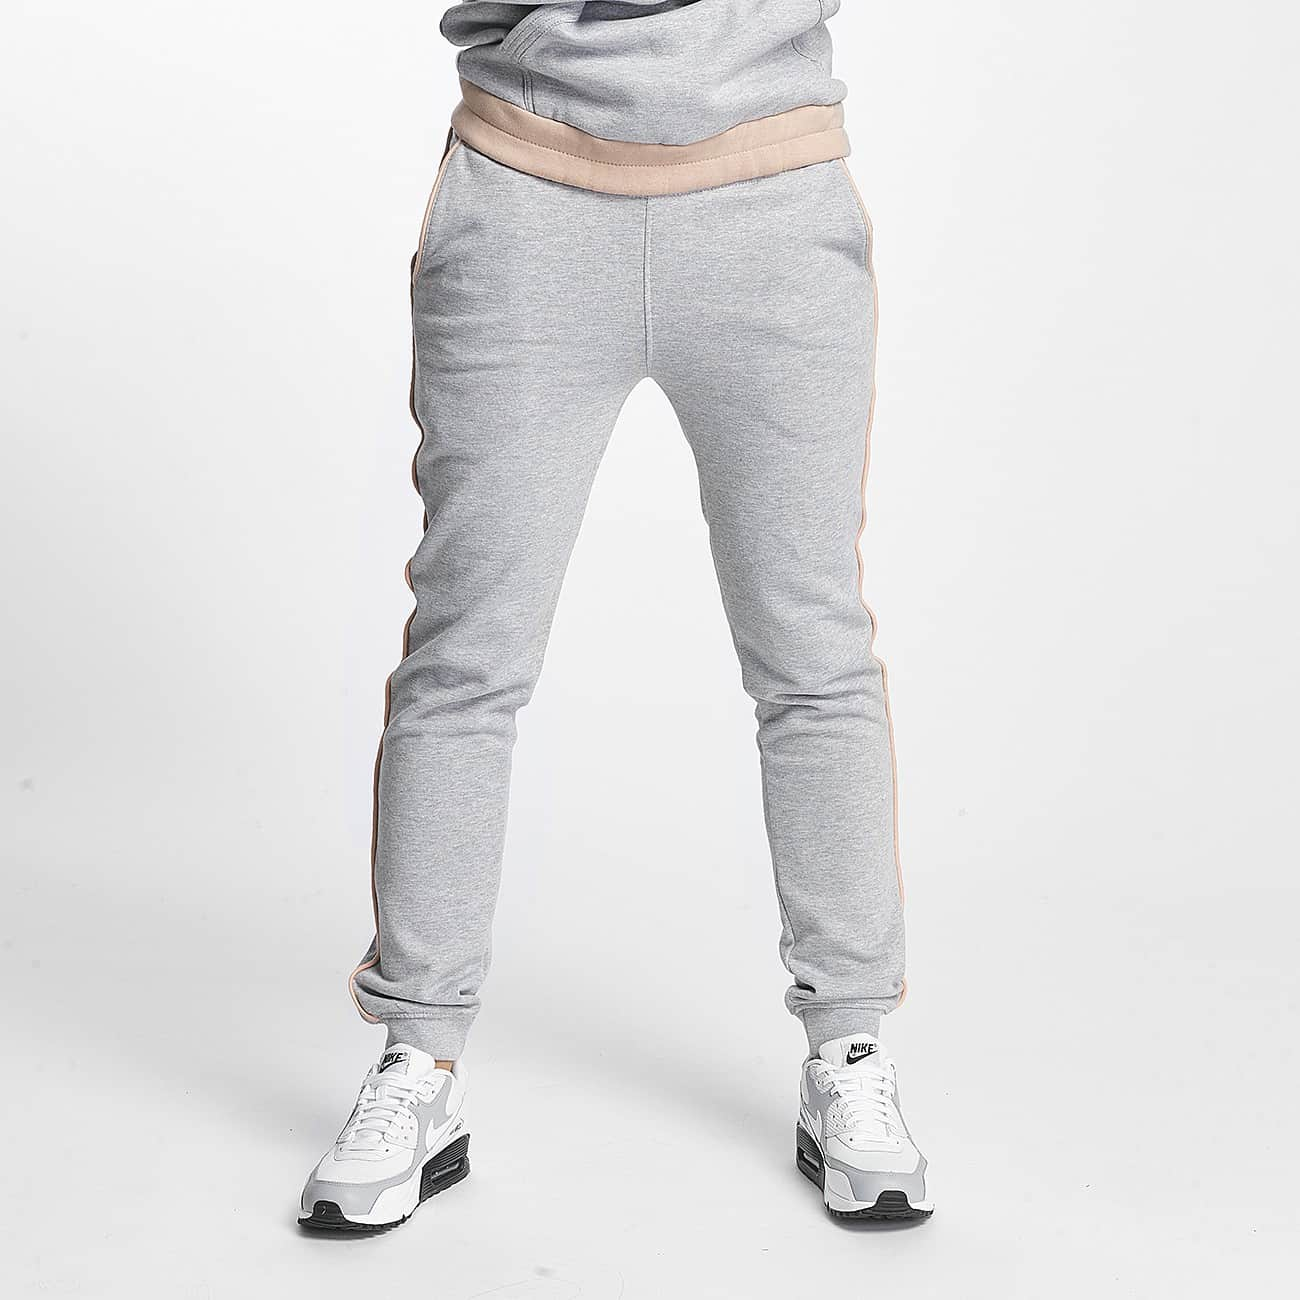 Cyprime / Sweat Pant Meitnerium in grey - Streetscenter